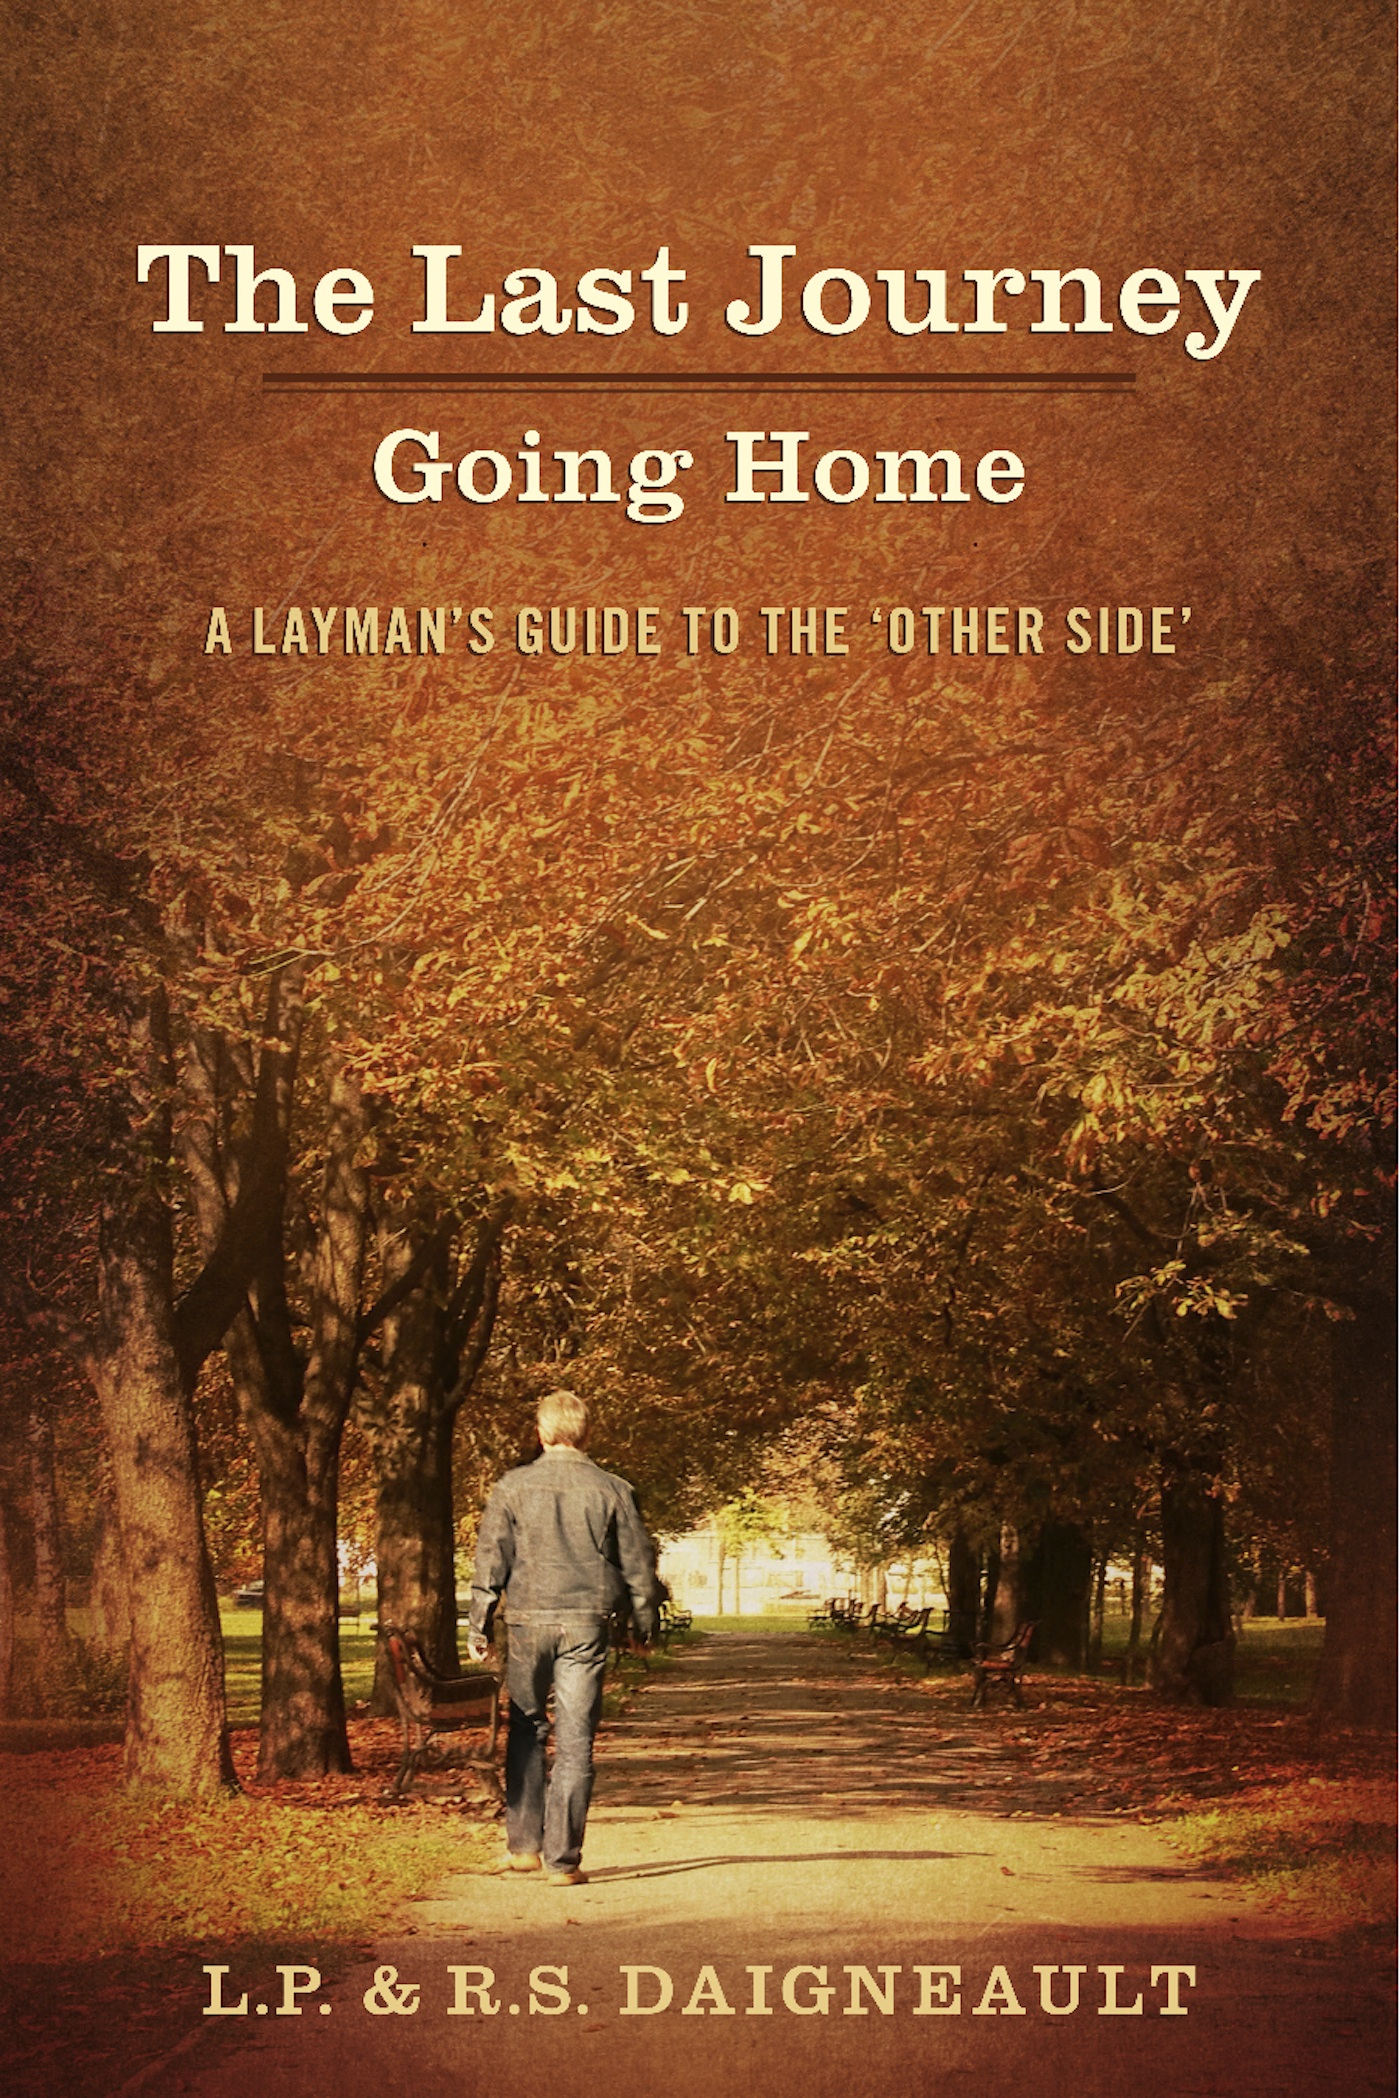 The Last Journey - Going Home